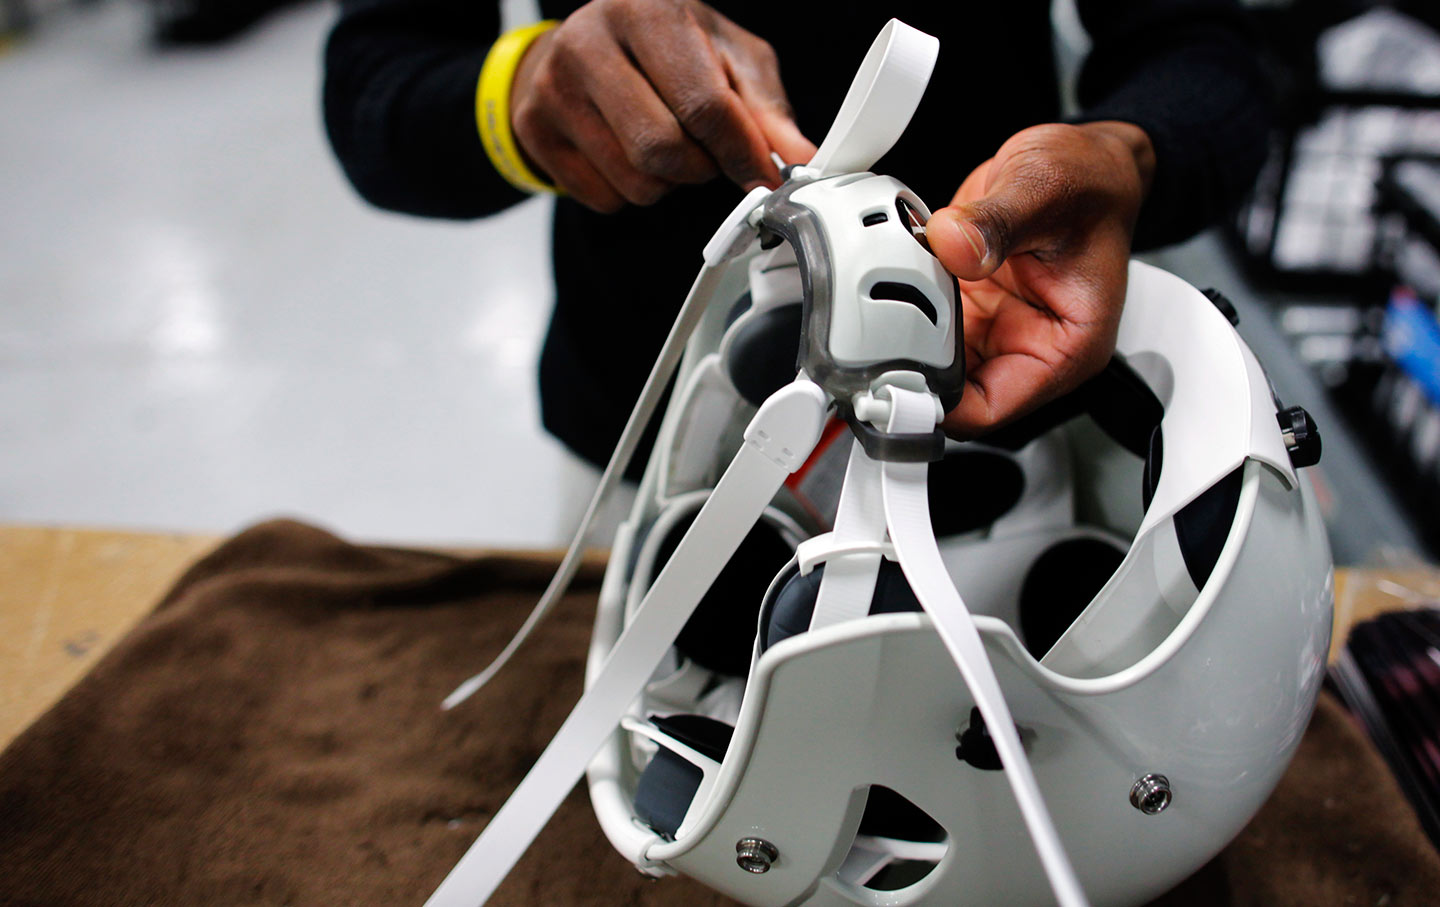 A worker assembles a football helmet in Lowell, Massachusetts.